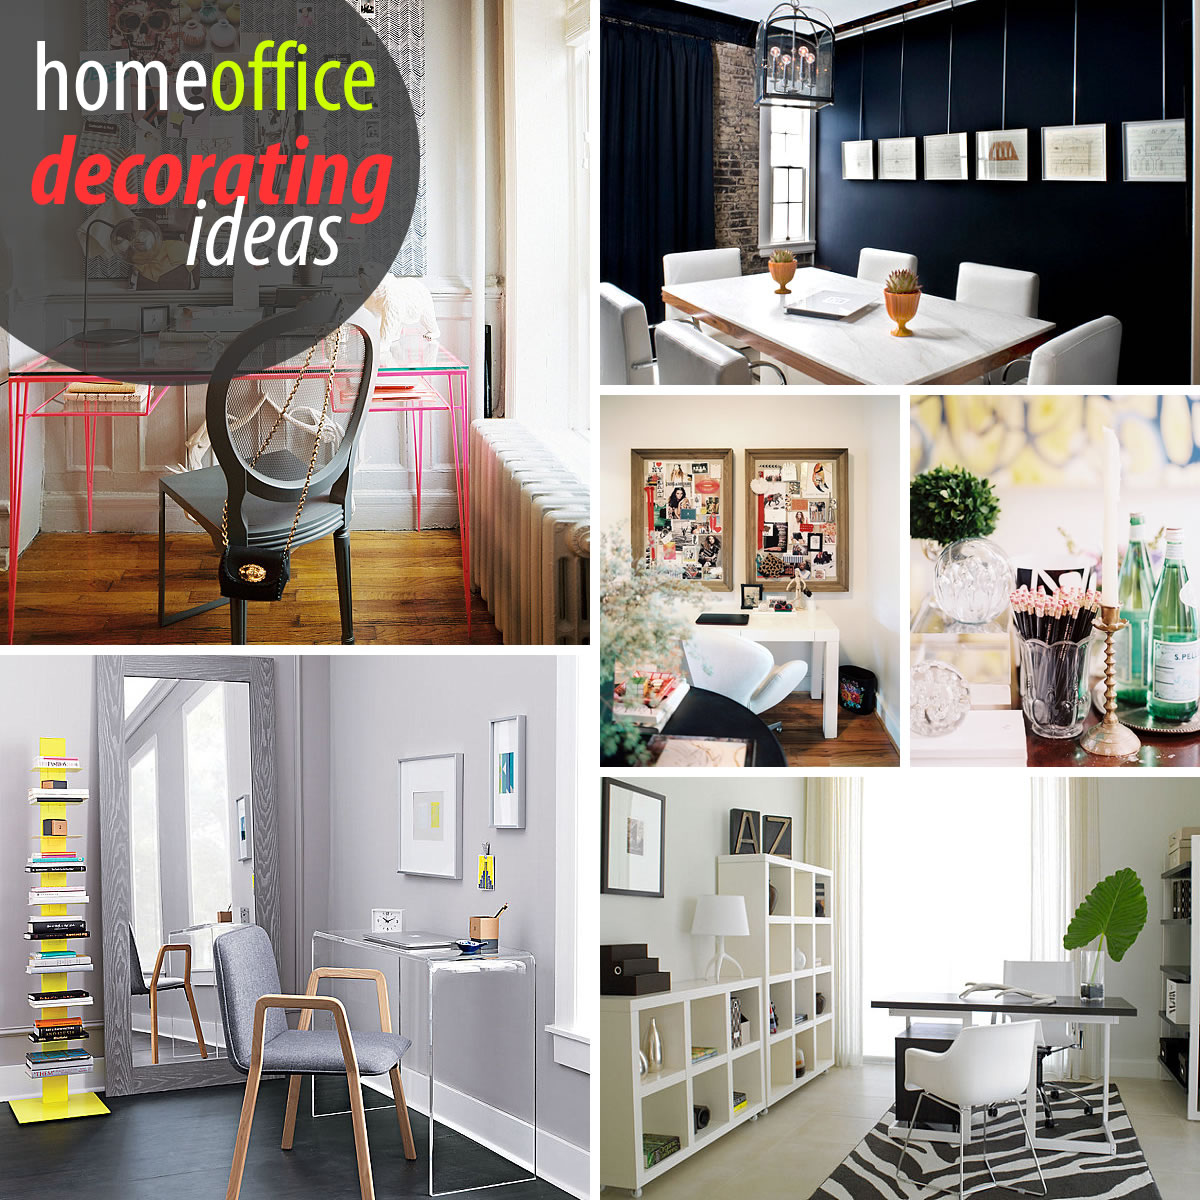 Creative home office decorating ideas for Design ideas for a home office